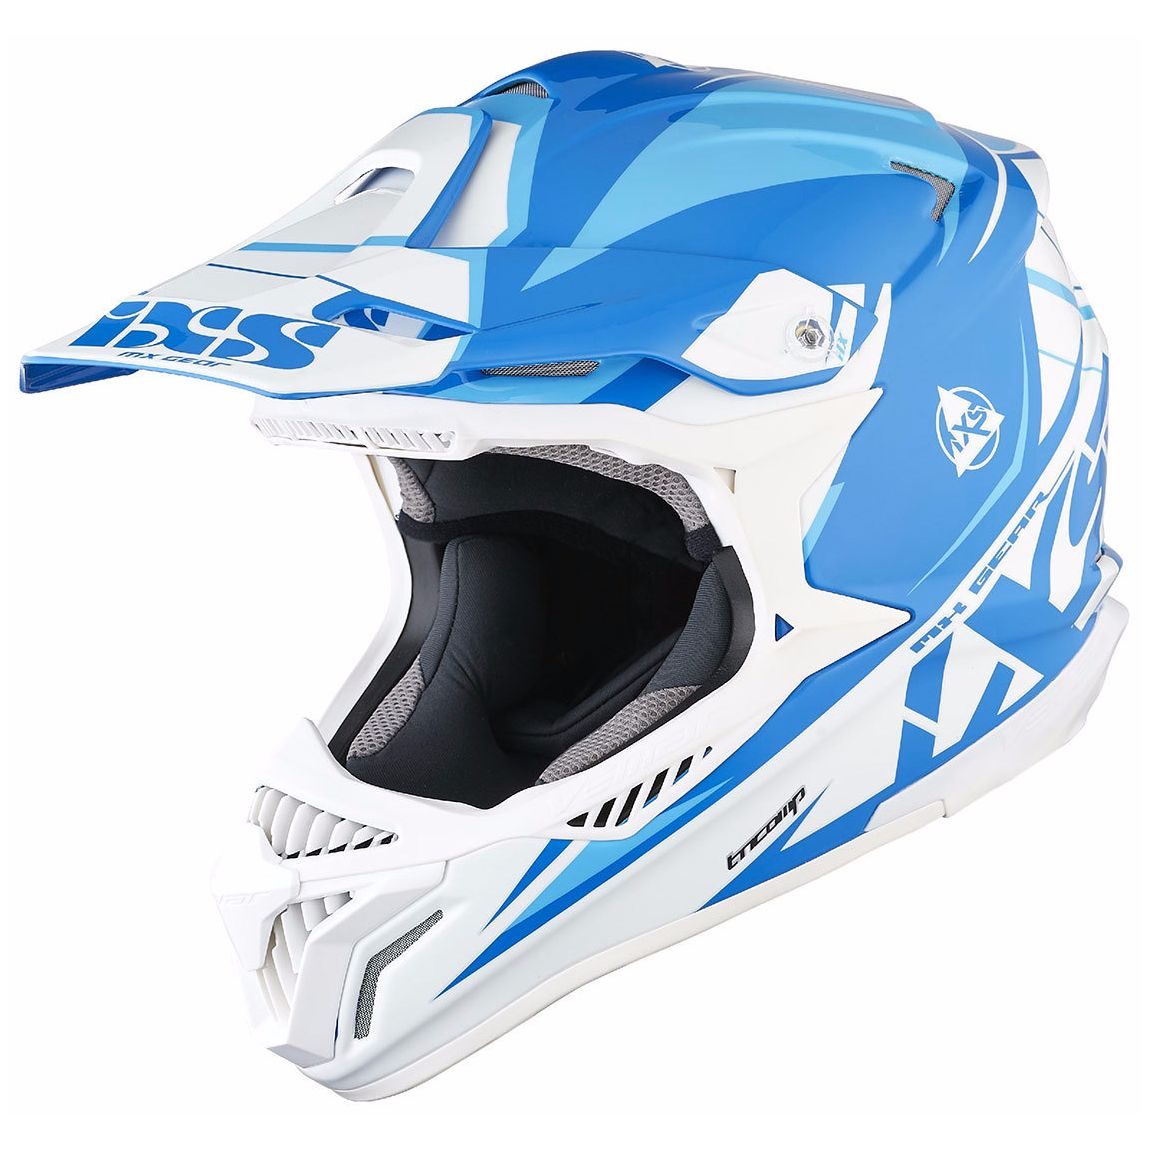 Casque Cross Ixs Hx179 Flash - Bleu Blanc